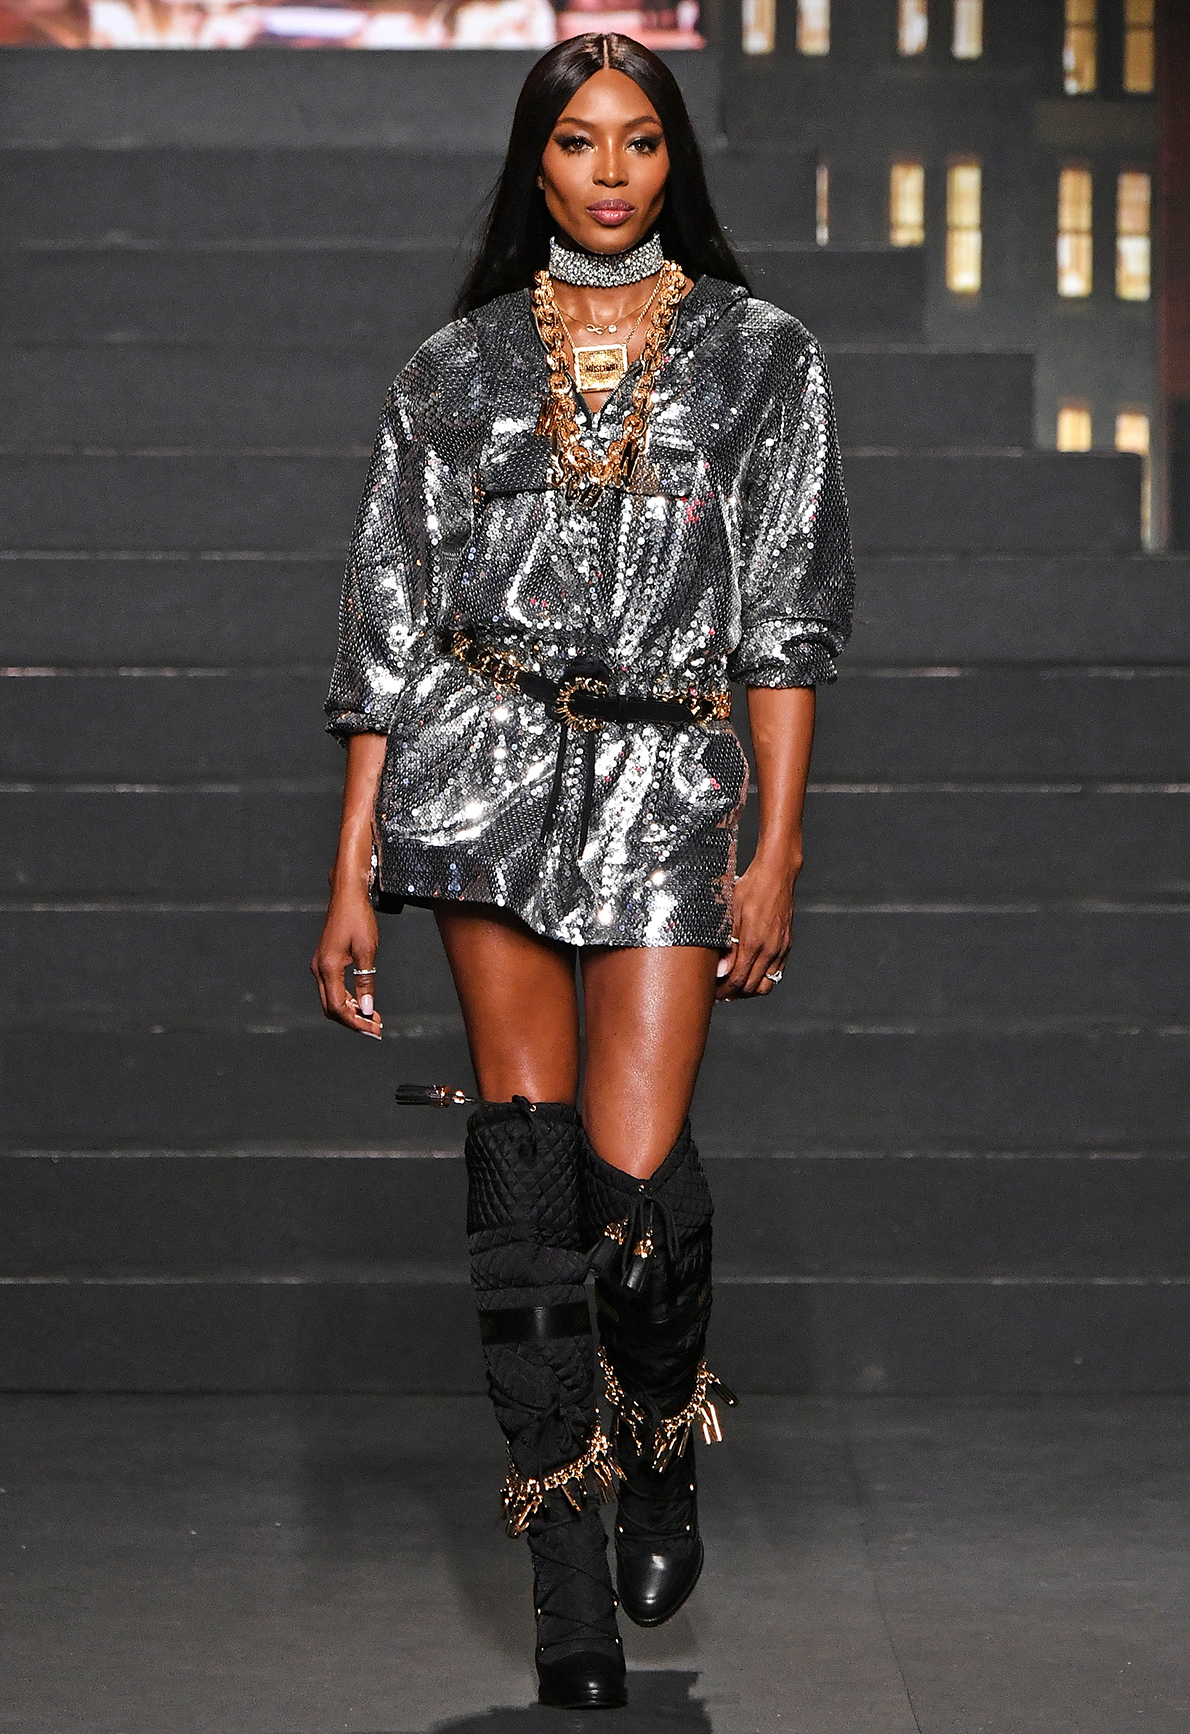 Naomi Campbell walks the runway during the Moschino x H&M - Runway